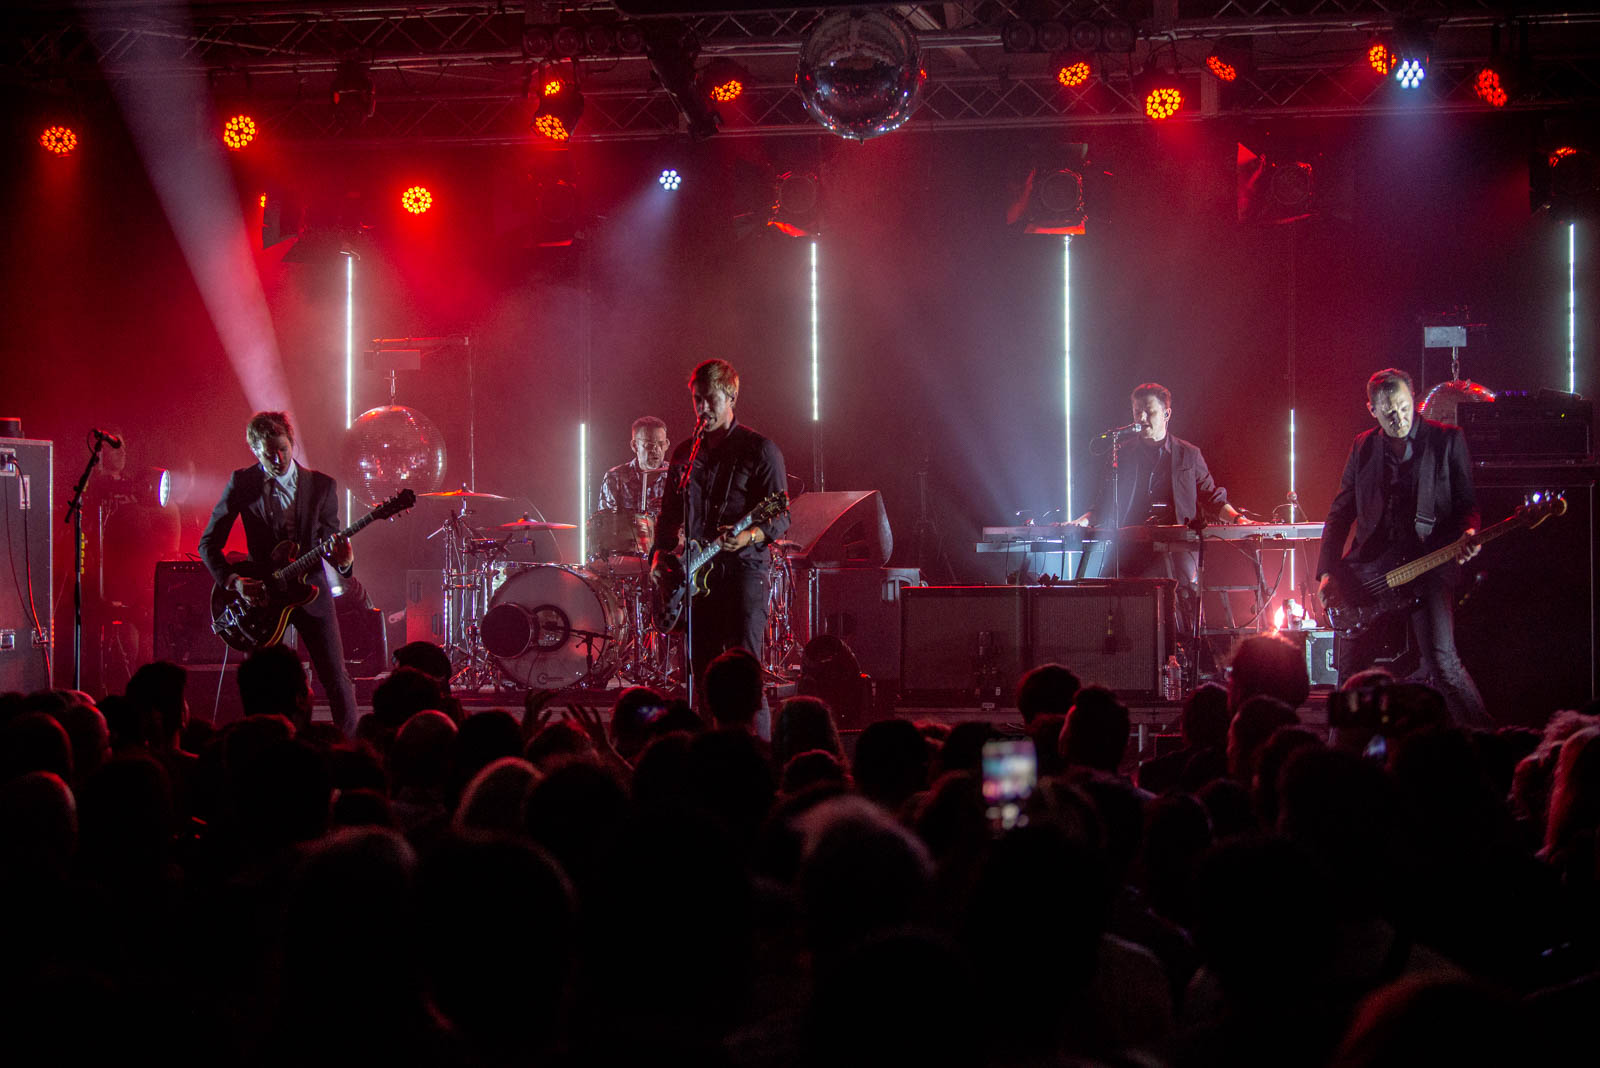 Interpol at House of Vans